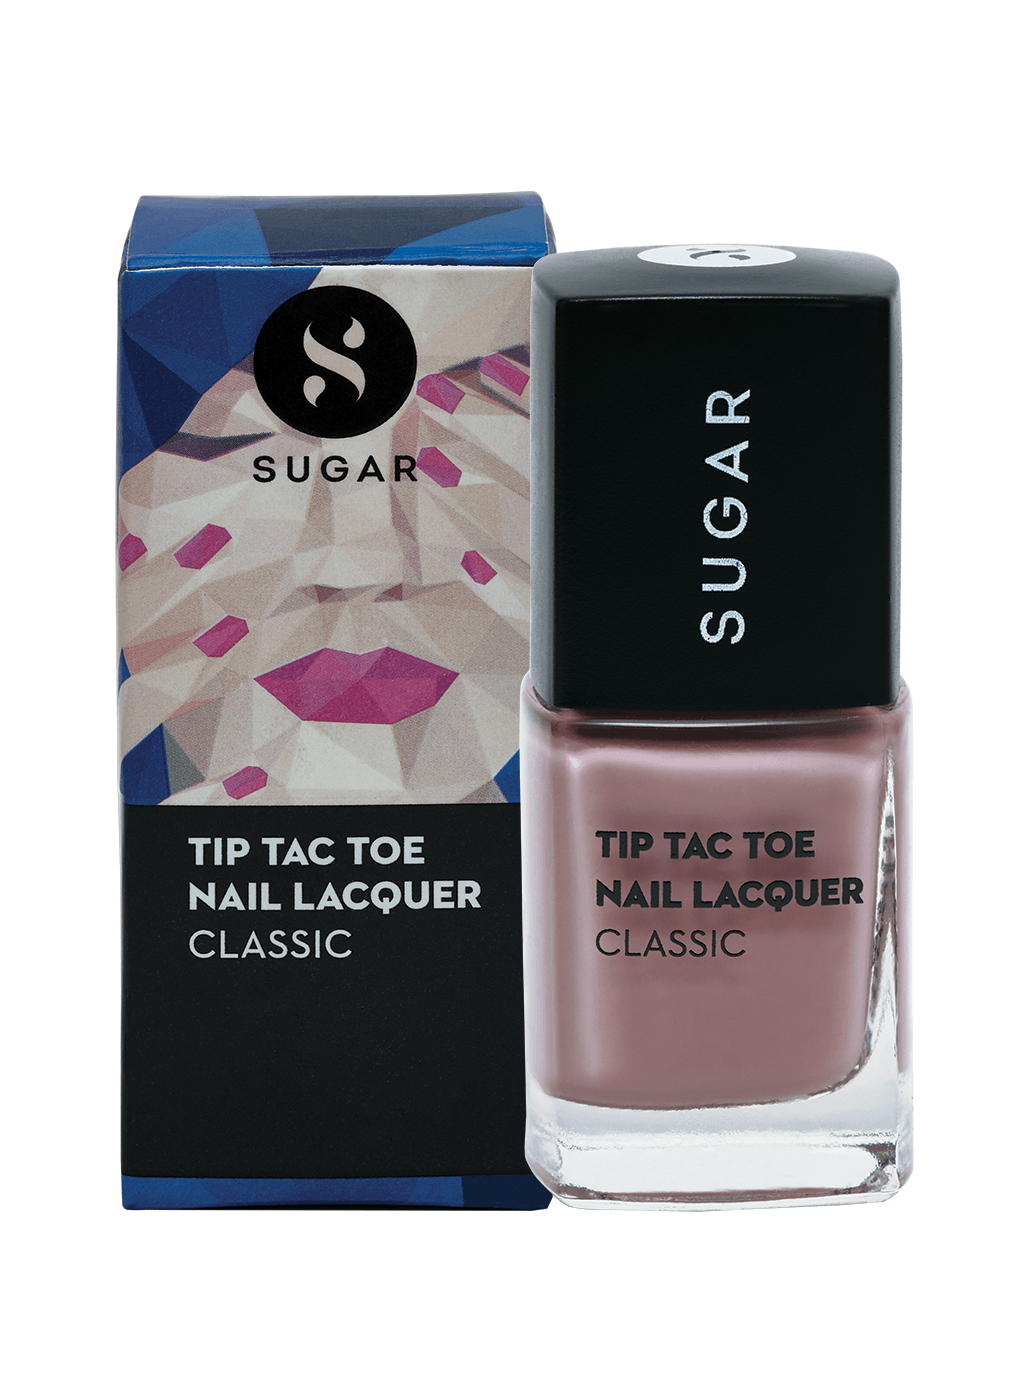 Tip Tac Toe Nail Lacquer - 017 Lilac Lustre (Pink Lilac)